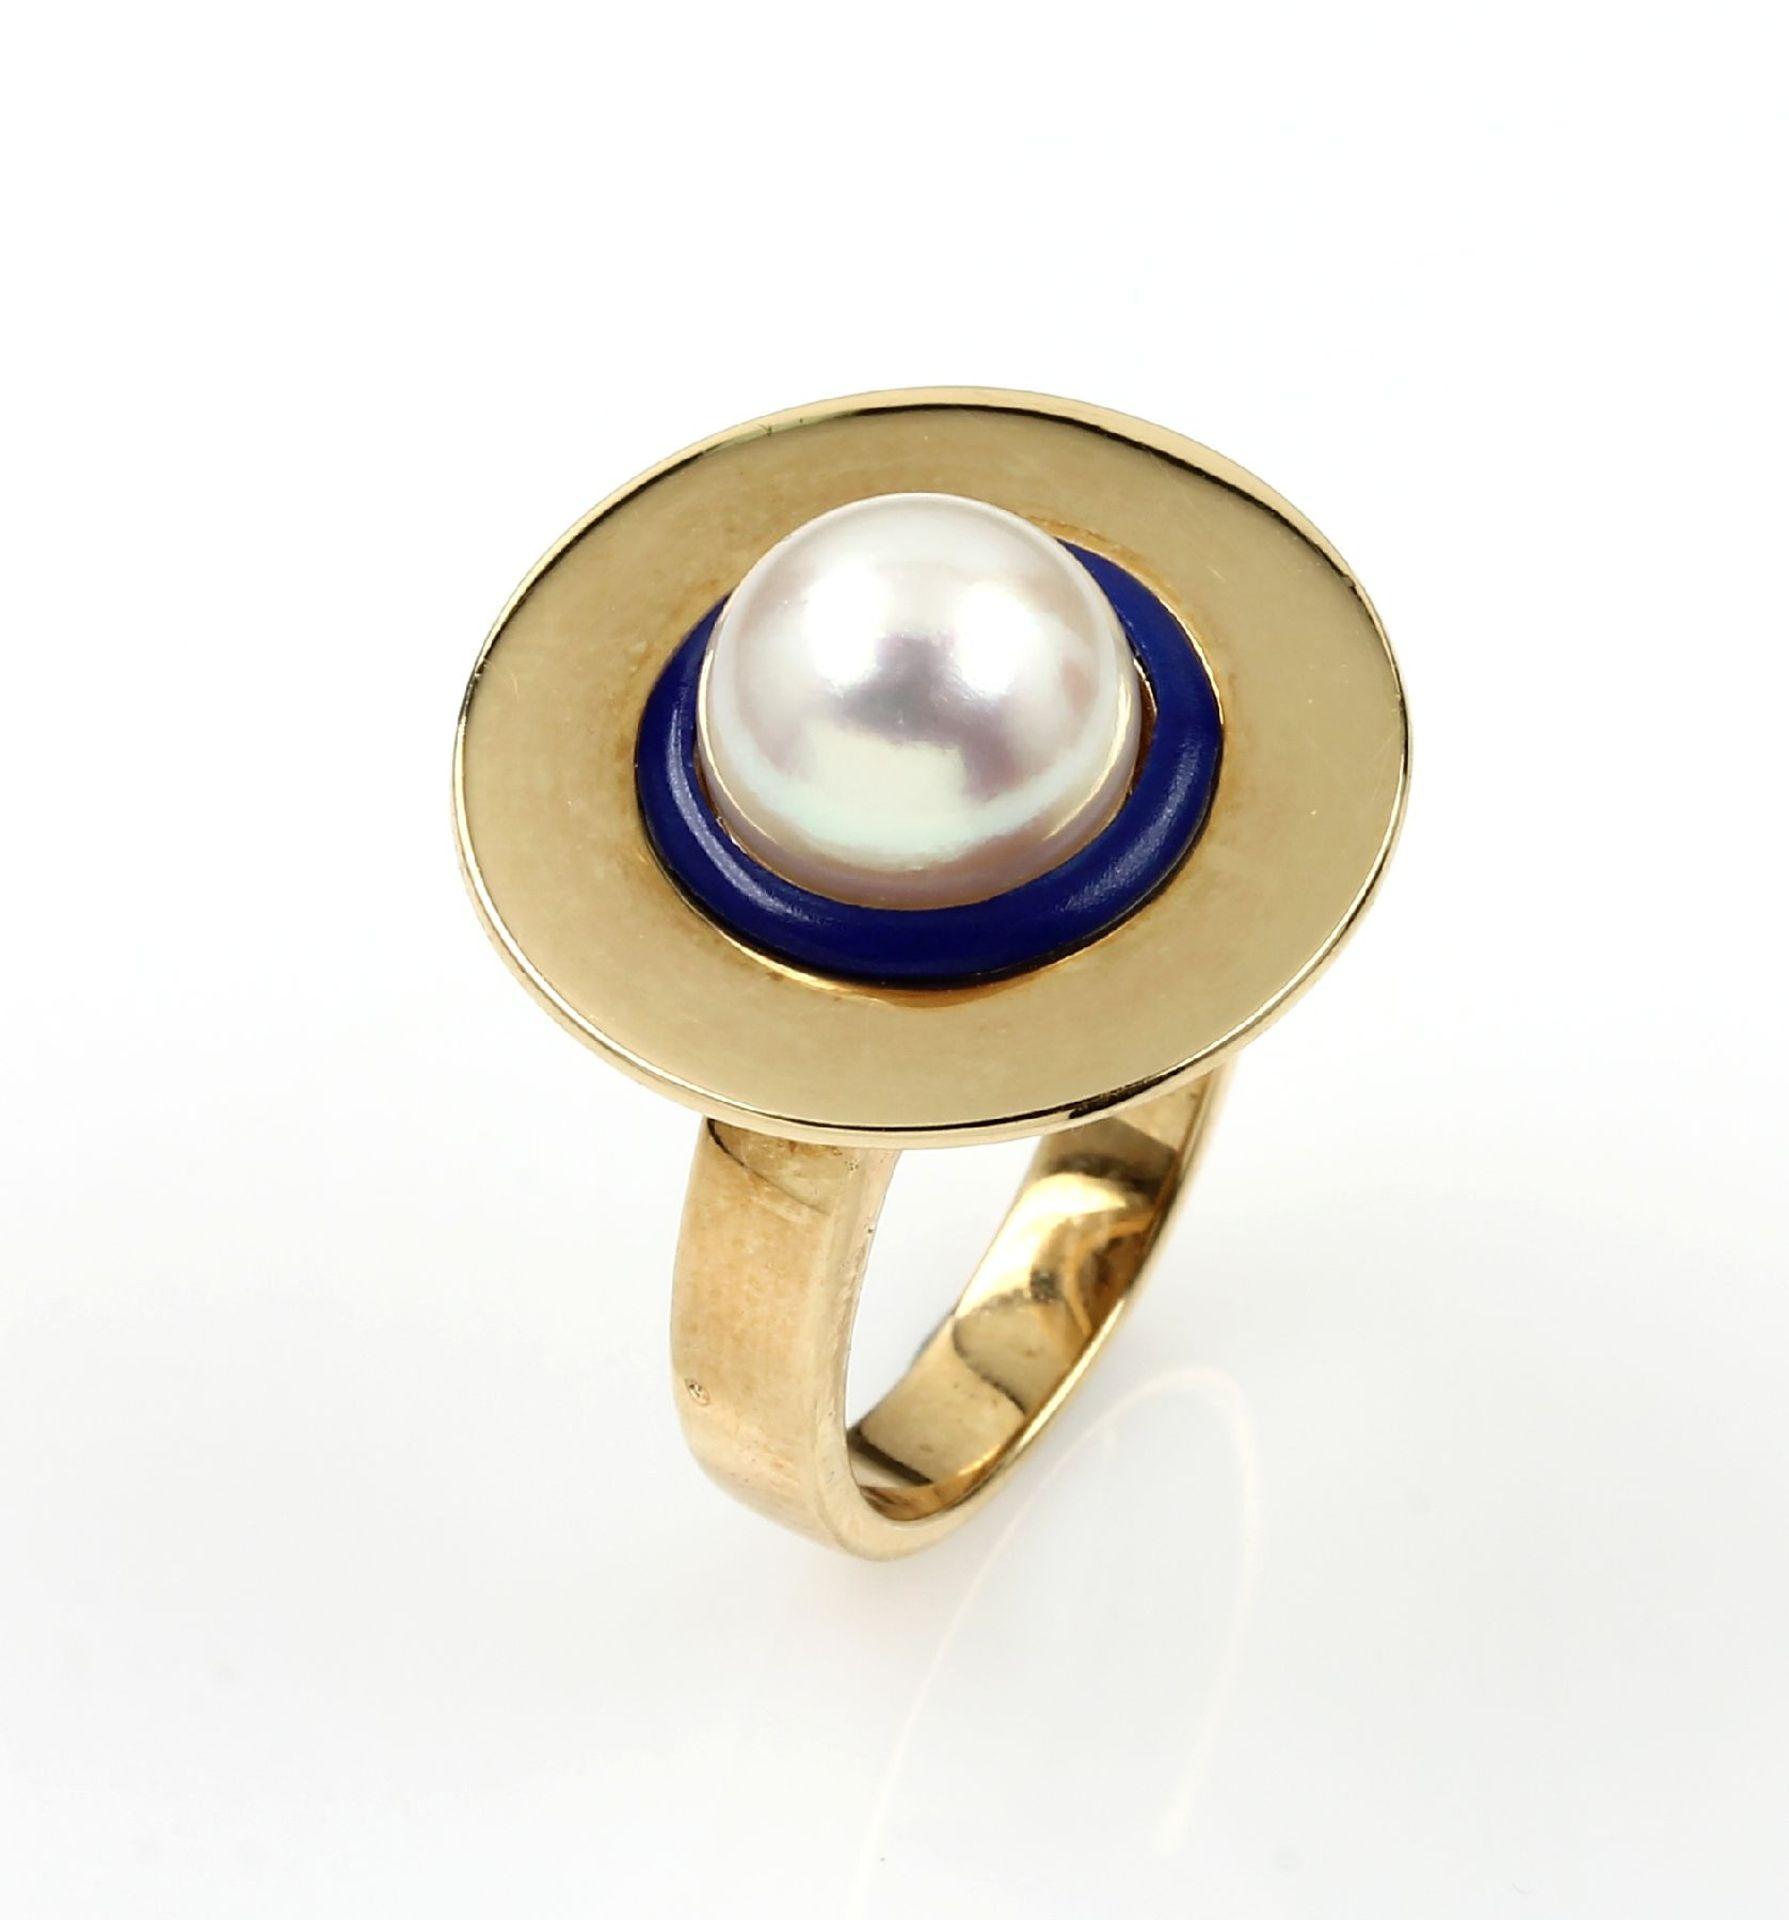 Los 61544 - 18 kt gold ring with cultured pearl and lapis lazuli , YG 750/000, centered rose colored pearl diam.